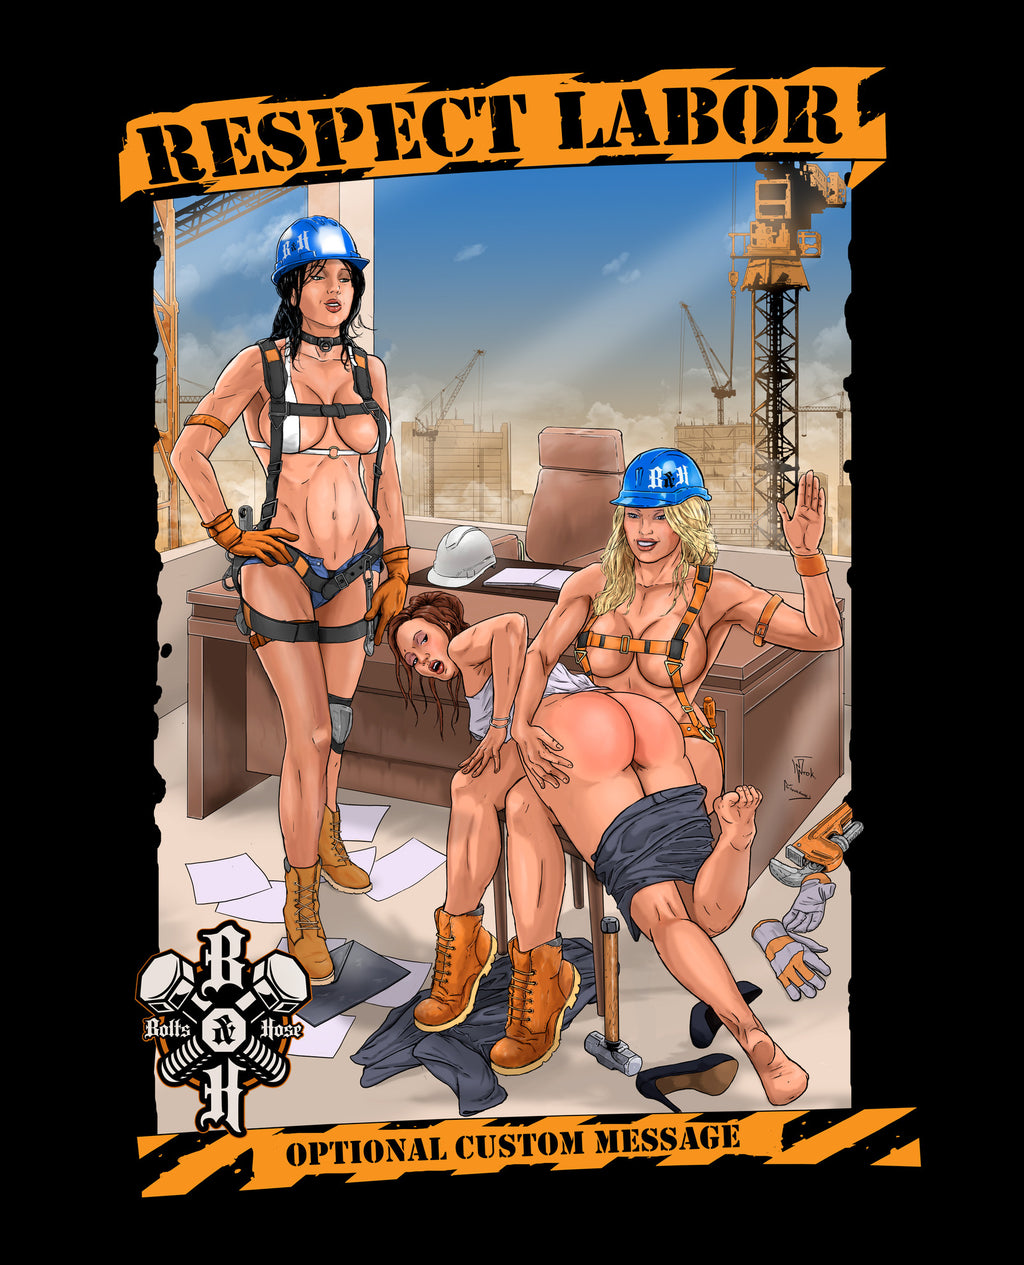 Customized Bolts & Hose™ Respect Labor